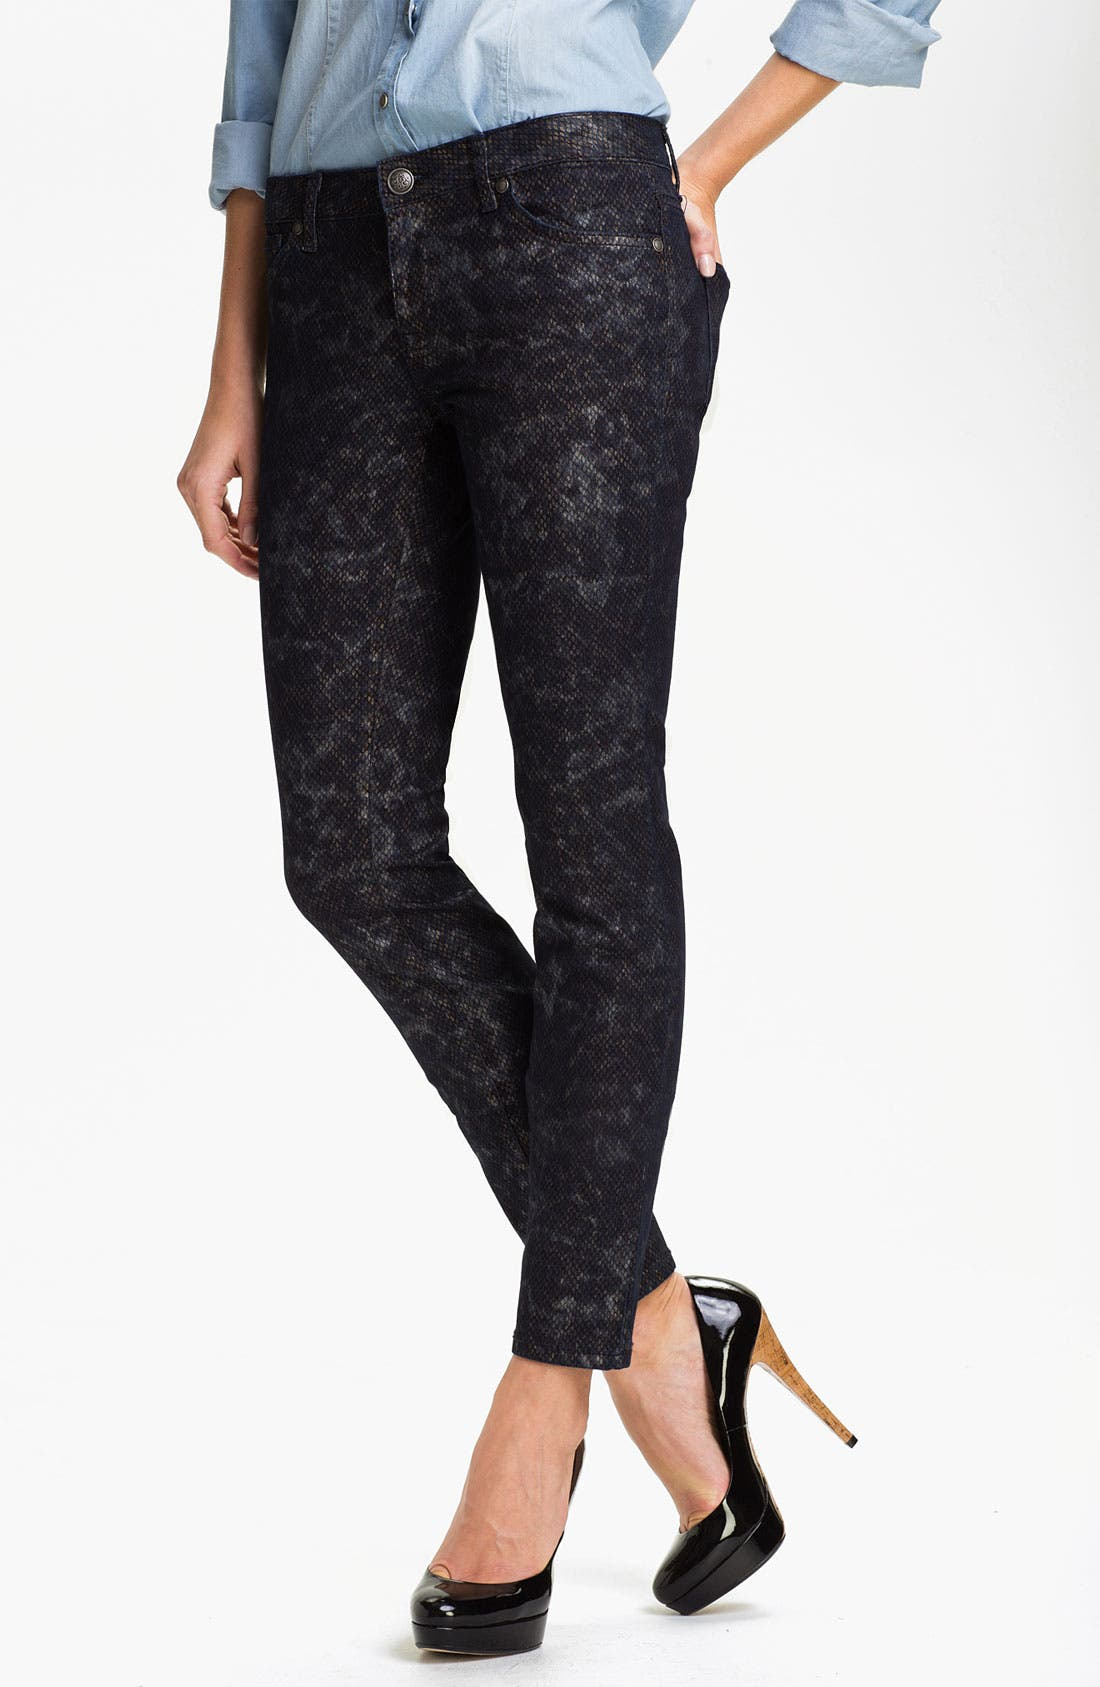 Main Image - Jessica Simpson 'Forever' Snakeskin Print Skinny Jeans (Online Exclusive)